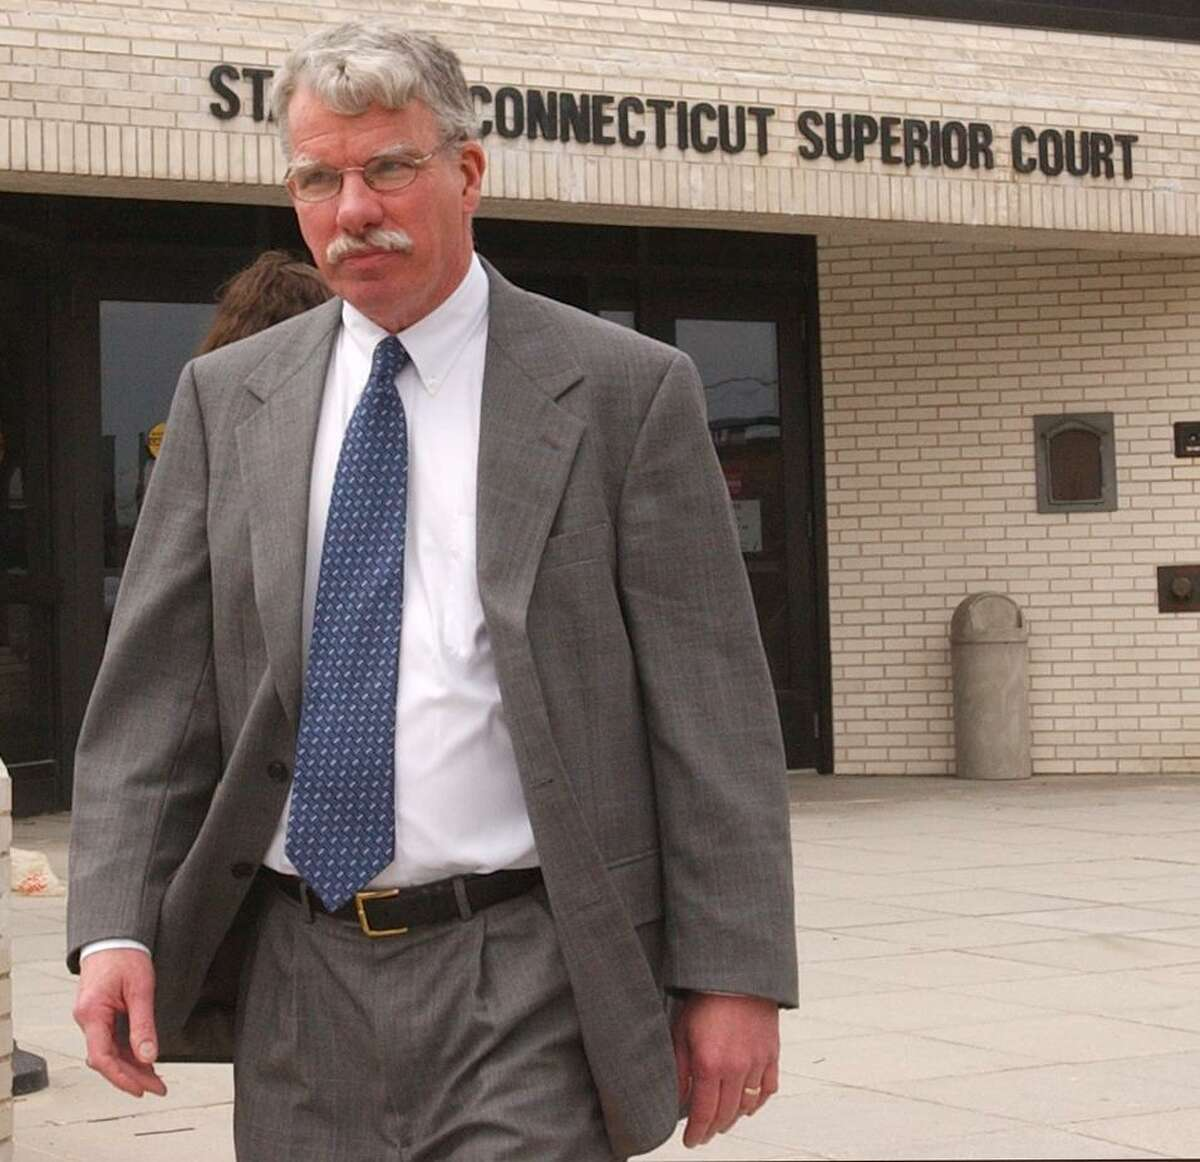 New London, Connecticut-HVIZDAK-4/7/05: New London County State Attorney Kevin Kane leaves New London Superior Court during a lunch break in the new competency hearings that began today 4/7/05 in the case of convicted serial killler Michael Ross. Kane is arguine in court that Ross is competent and should be executed. The court will ultimately decide if Ross is competent to forgo further appeals and proceed with his execution in May 2005. Photograph by Peter Hvizdak ph0300a #117 Photograph by Peter Hvizdak ph0300a #117